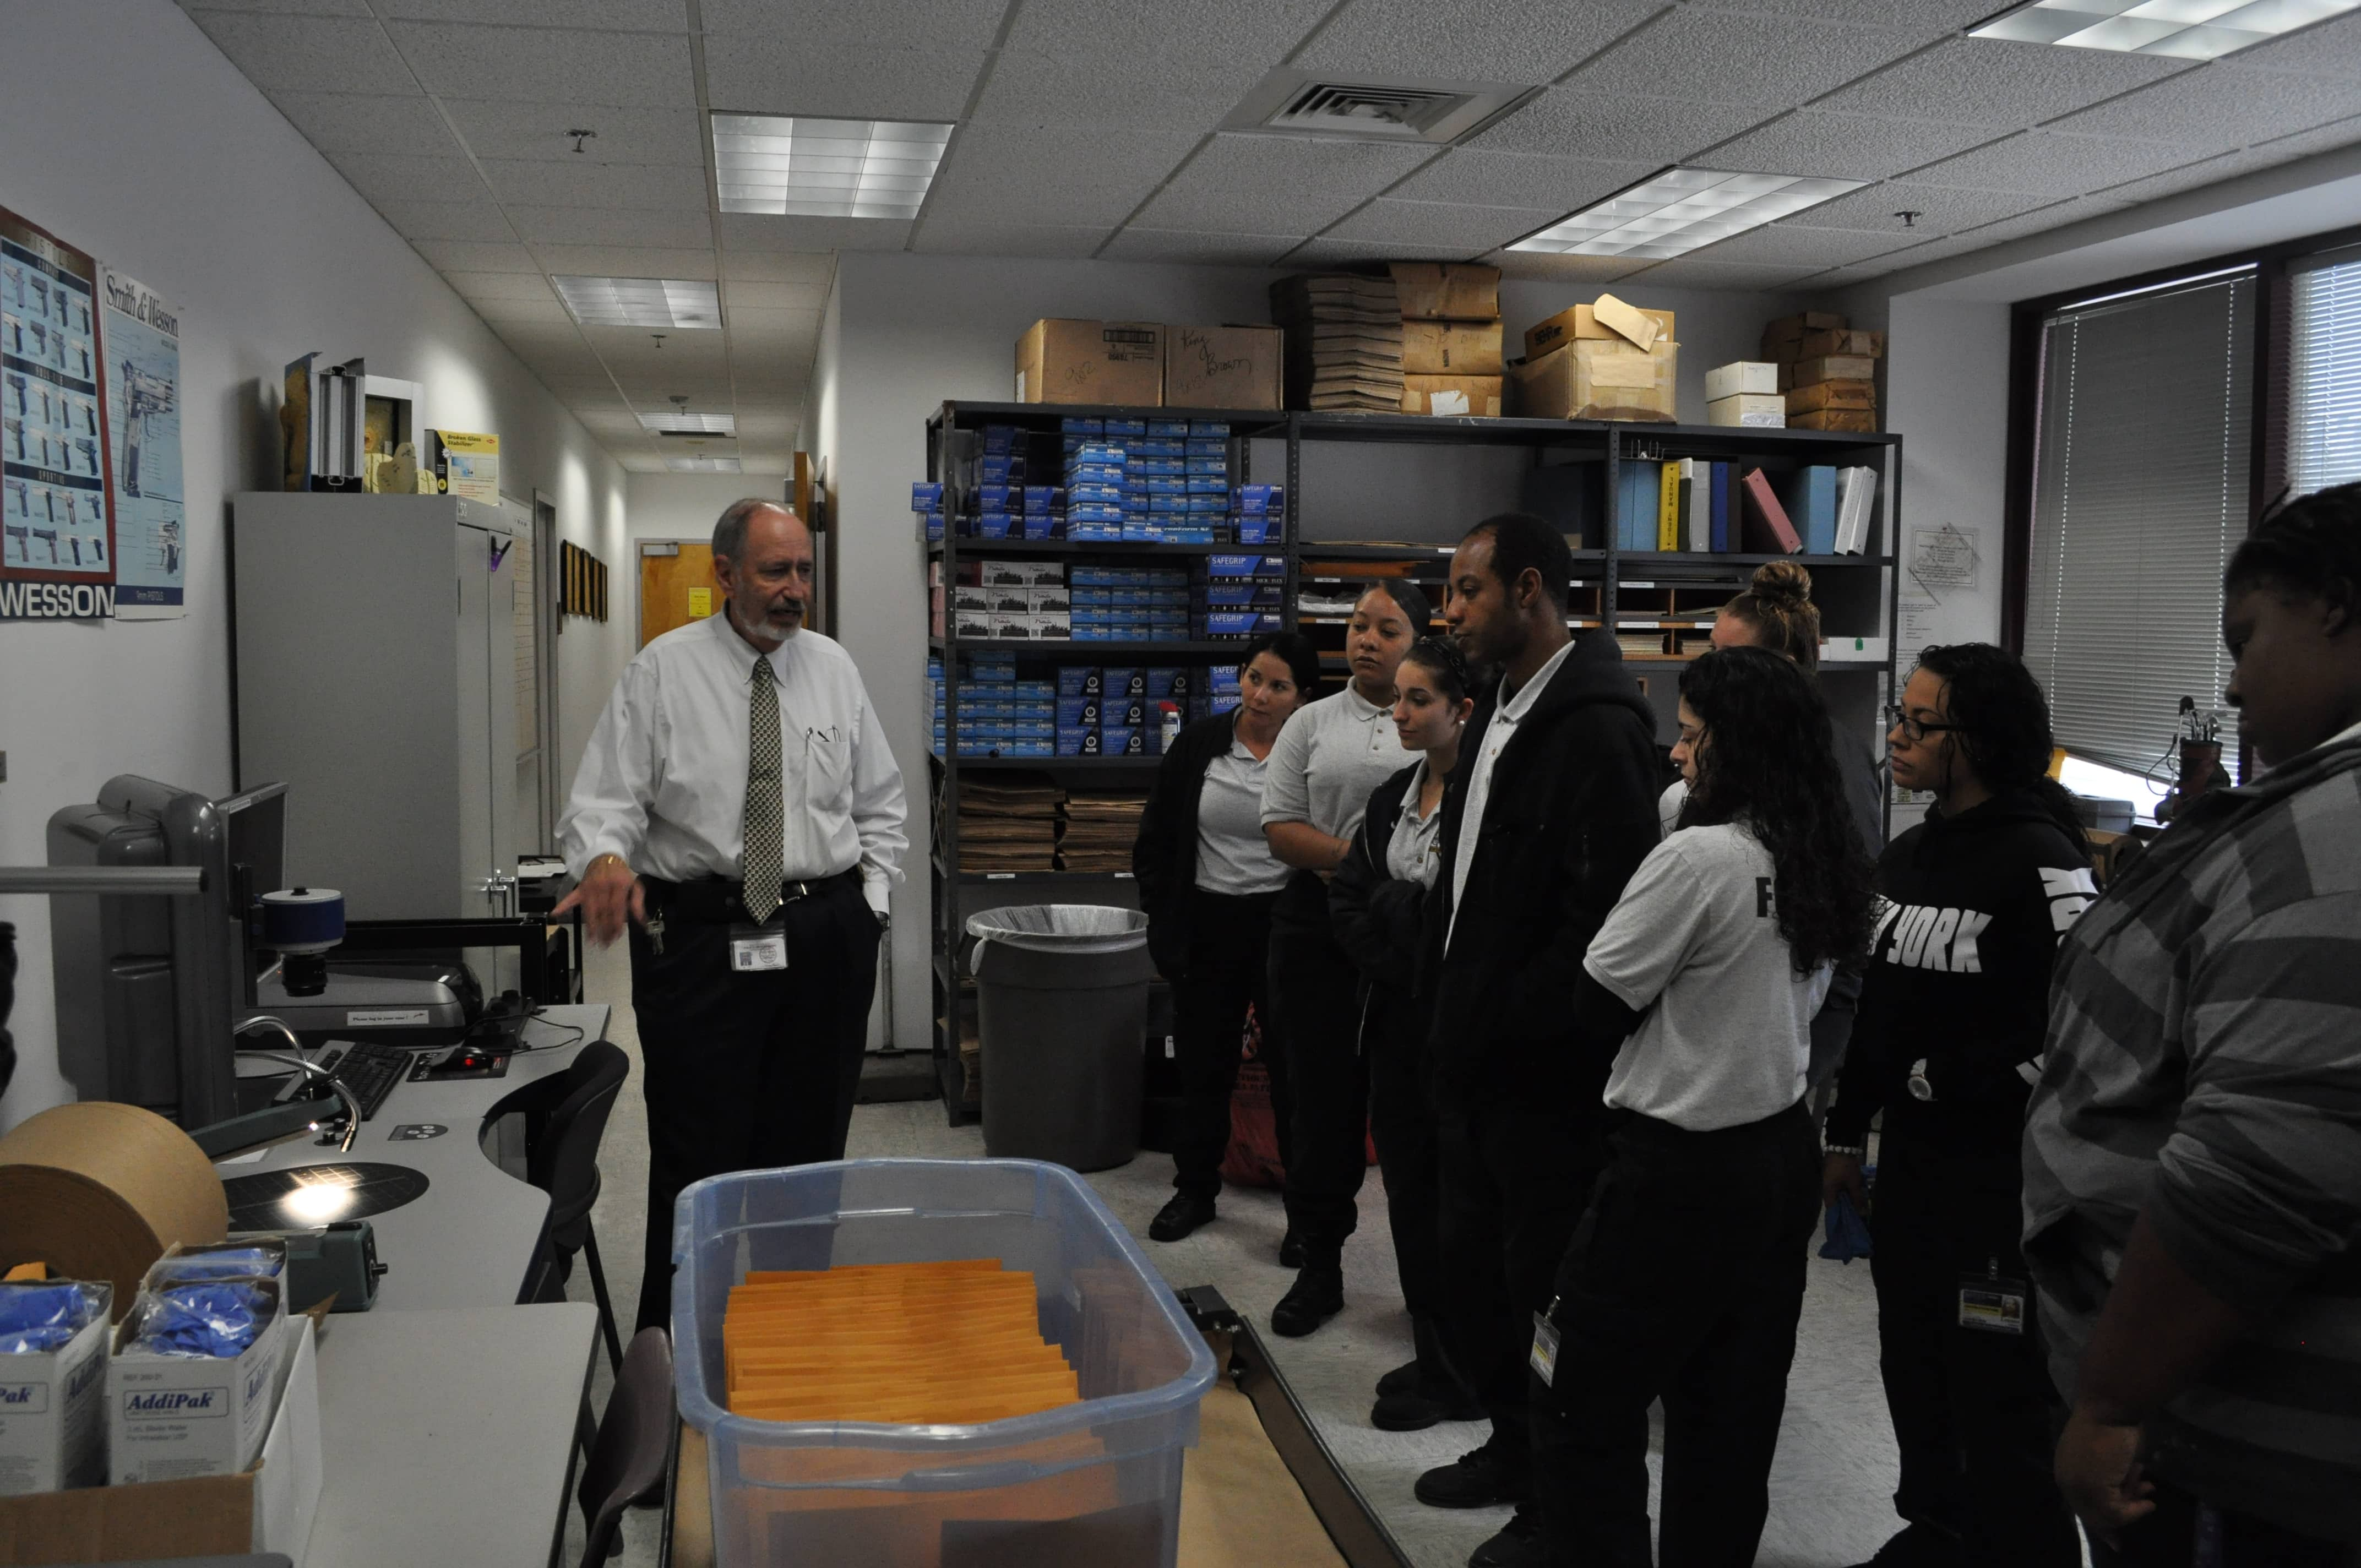 CST Students From West Palm Beach Visit The Crime Scene Unit